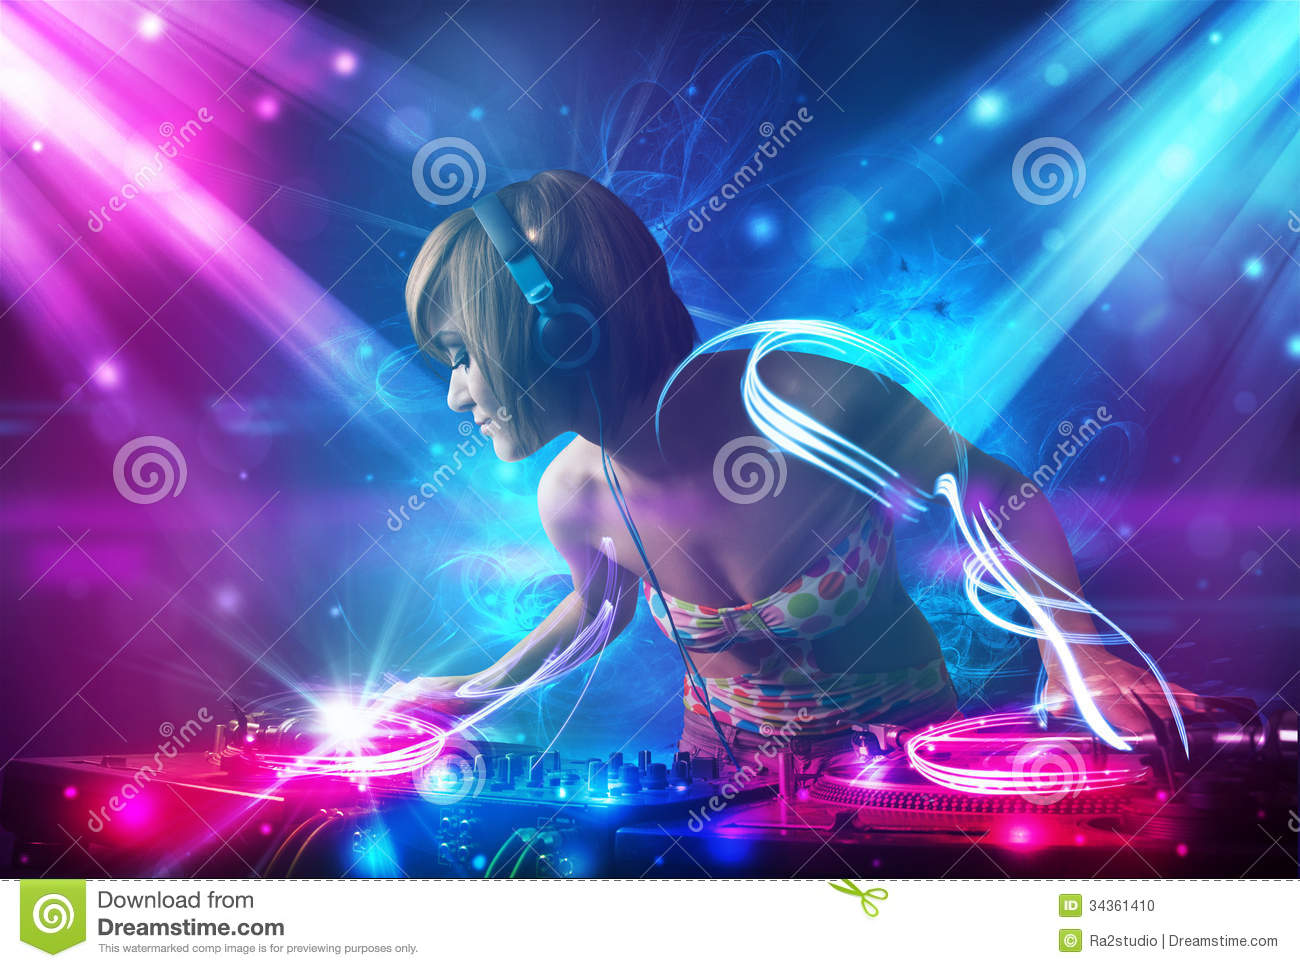 Dj Girl Mixing Music With Powerful Light Effects Stock